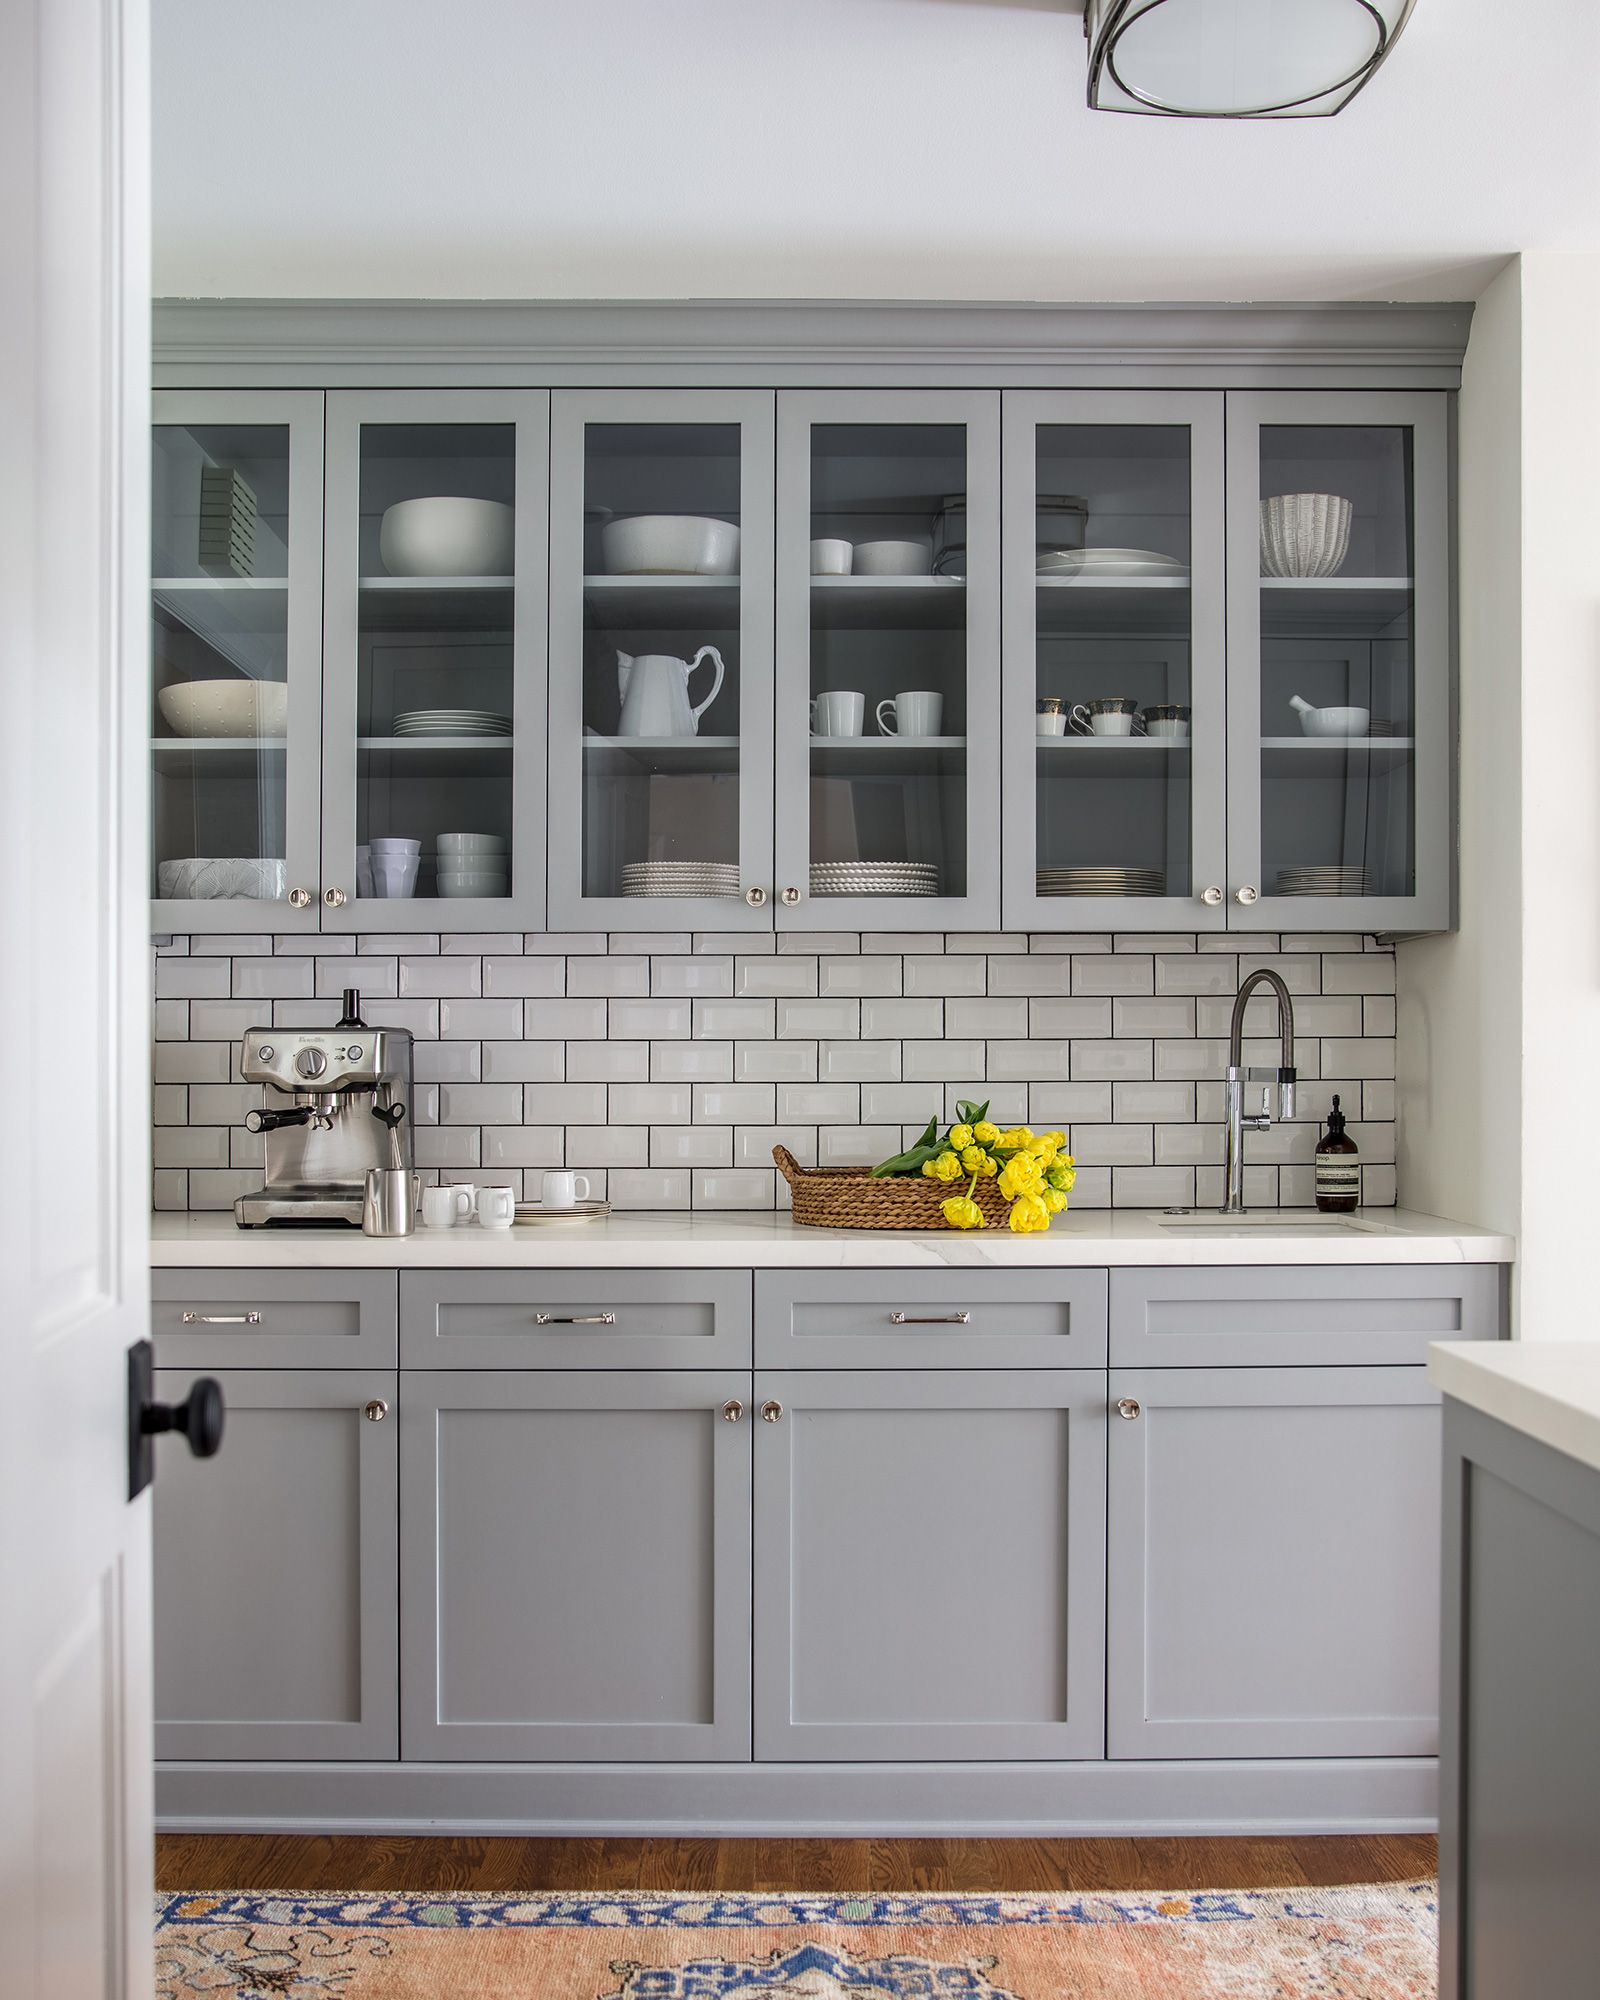 Blue Gray in the kitchen with white subway tile